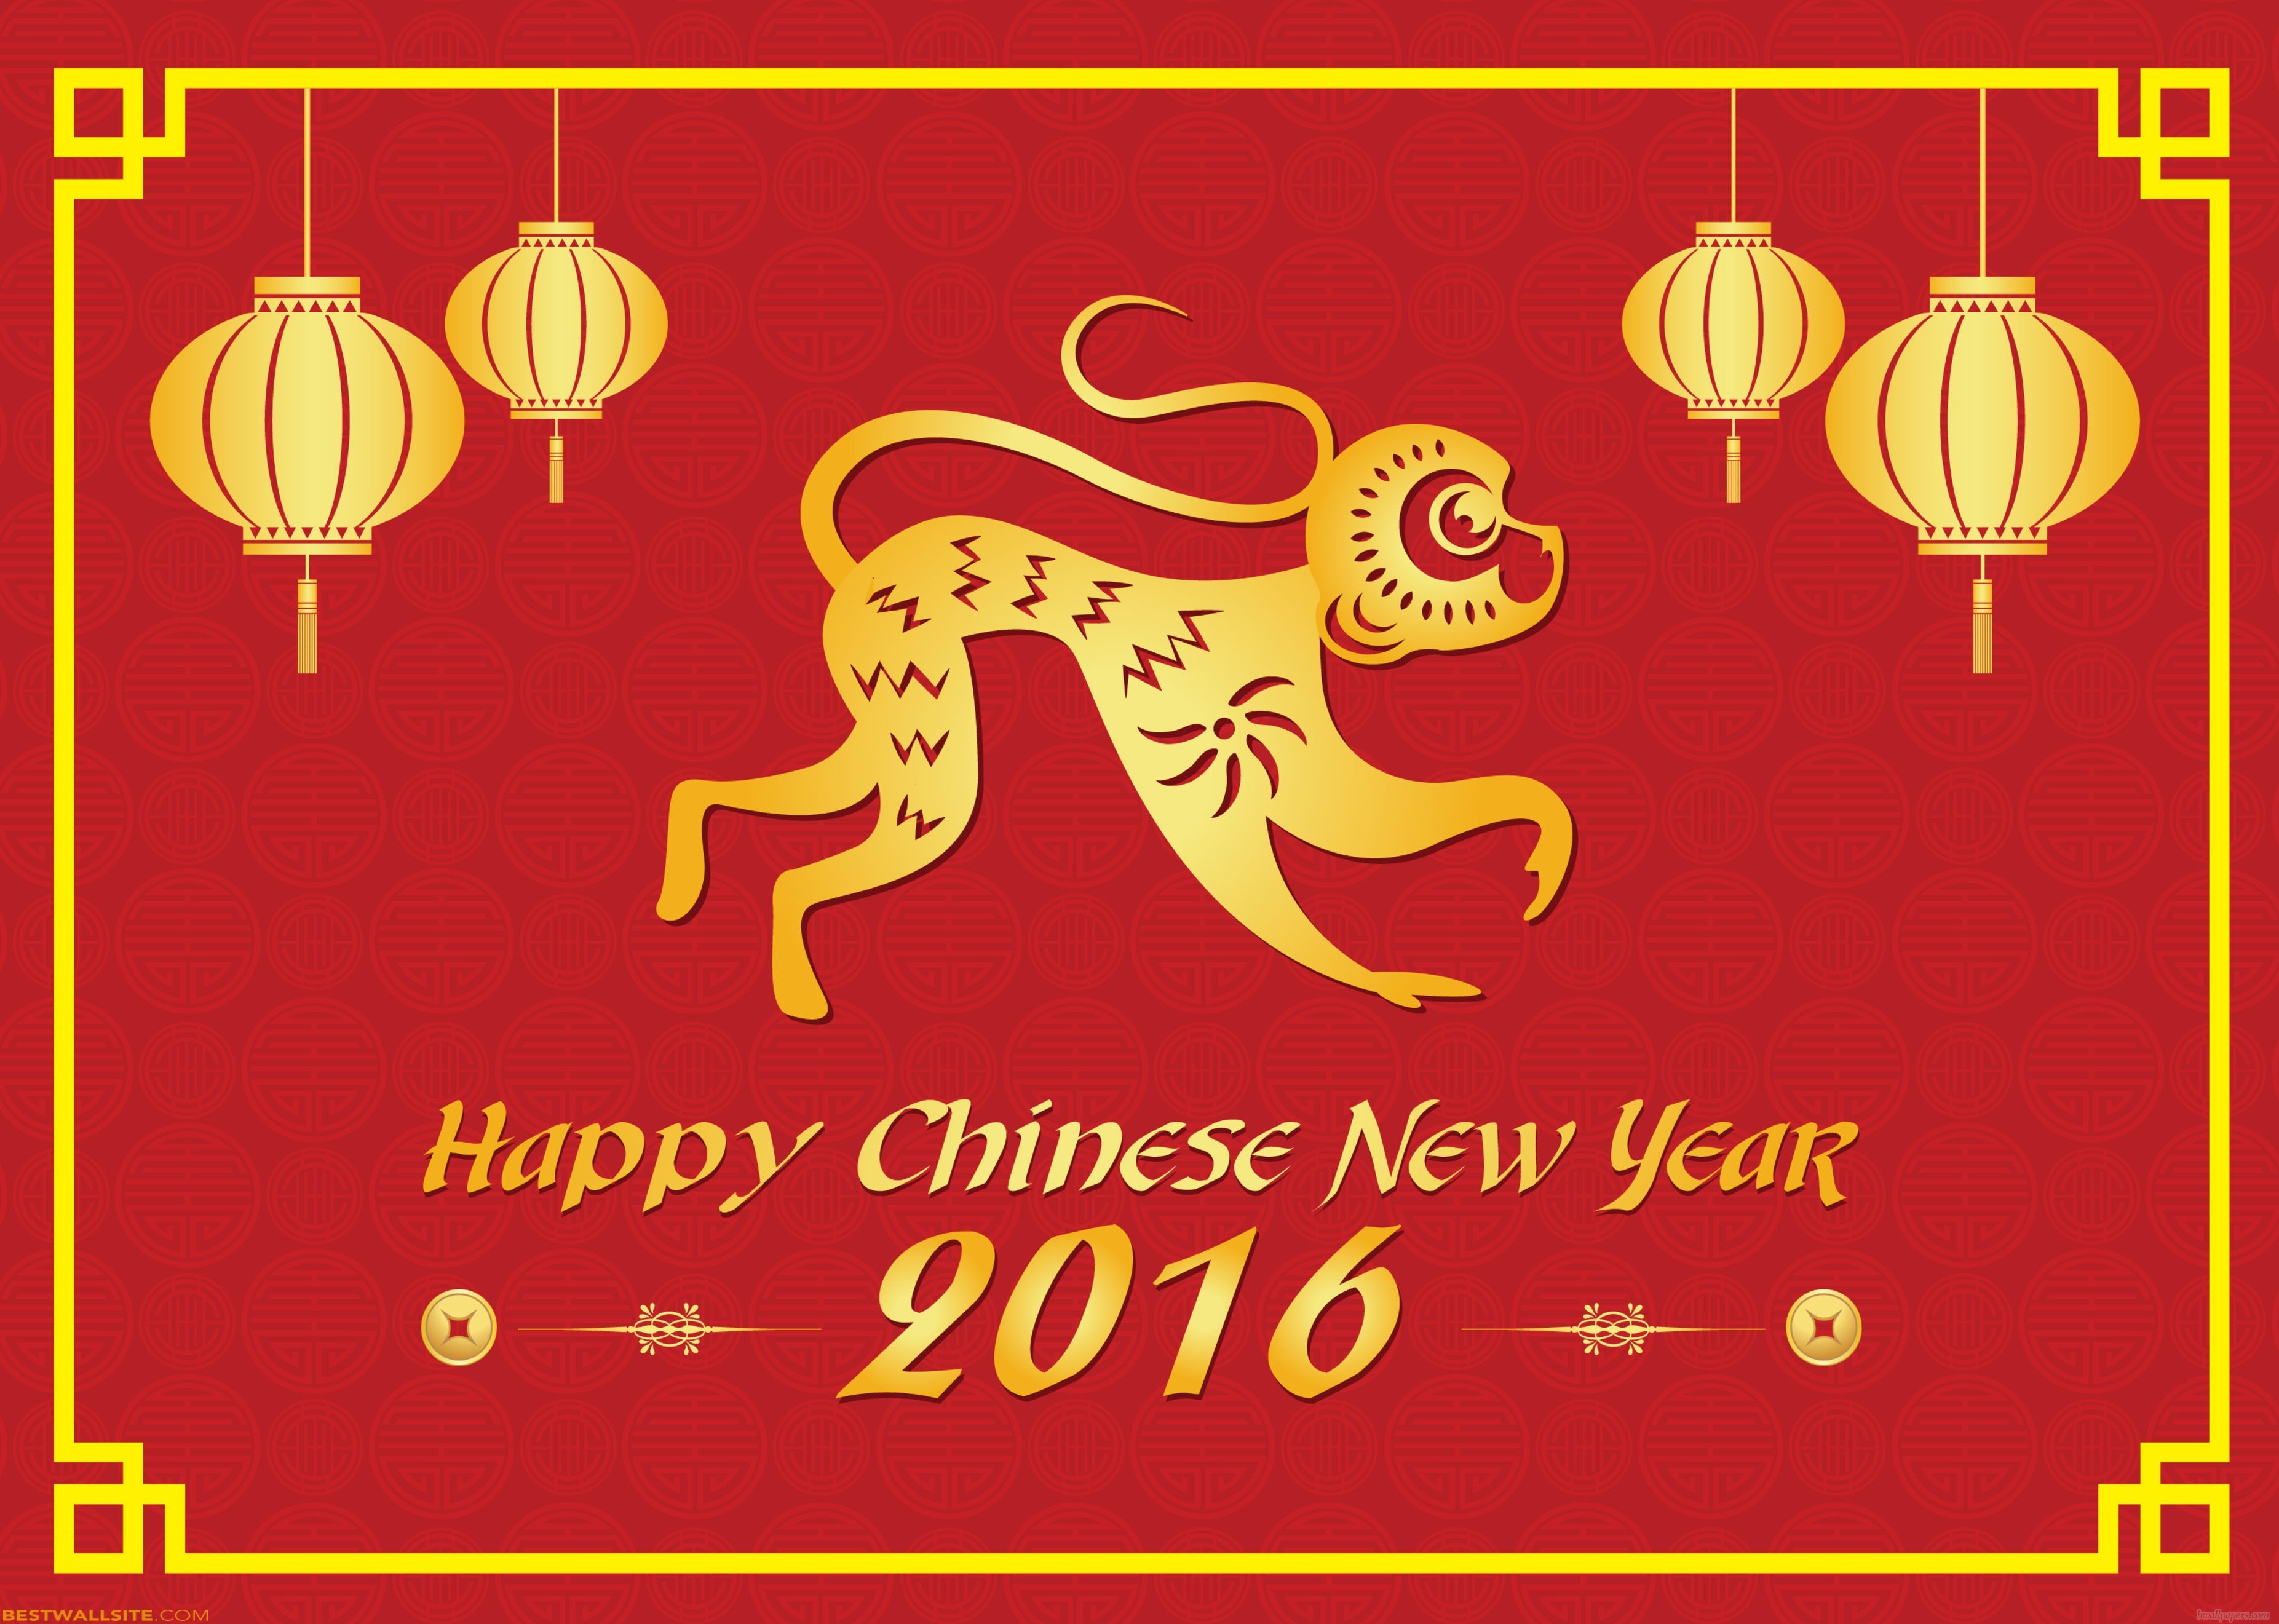 happy chinese new year 2016 wallpaper high definition high